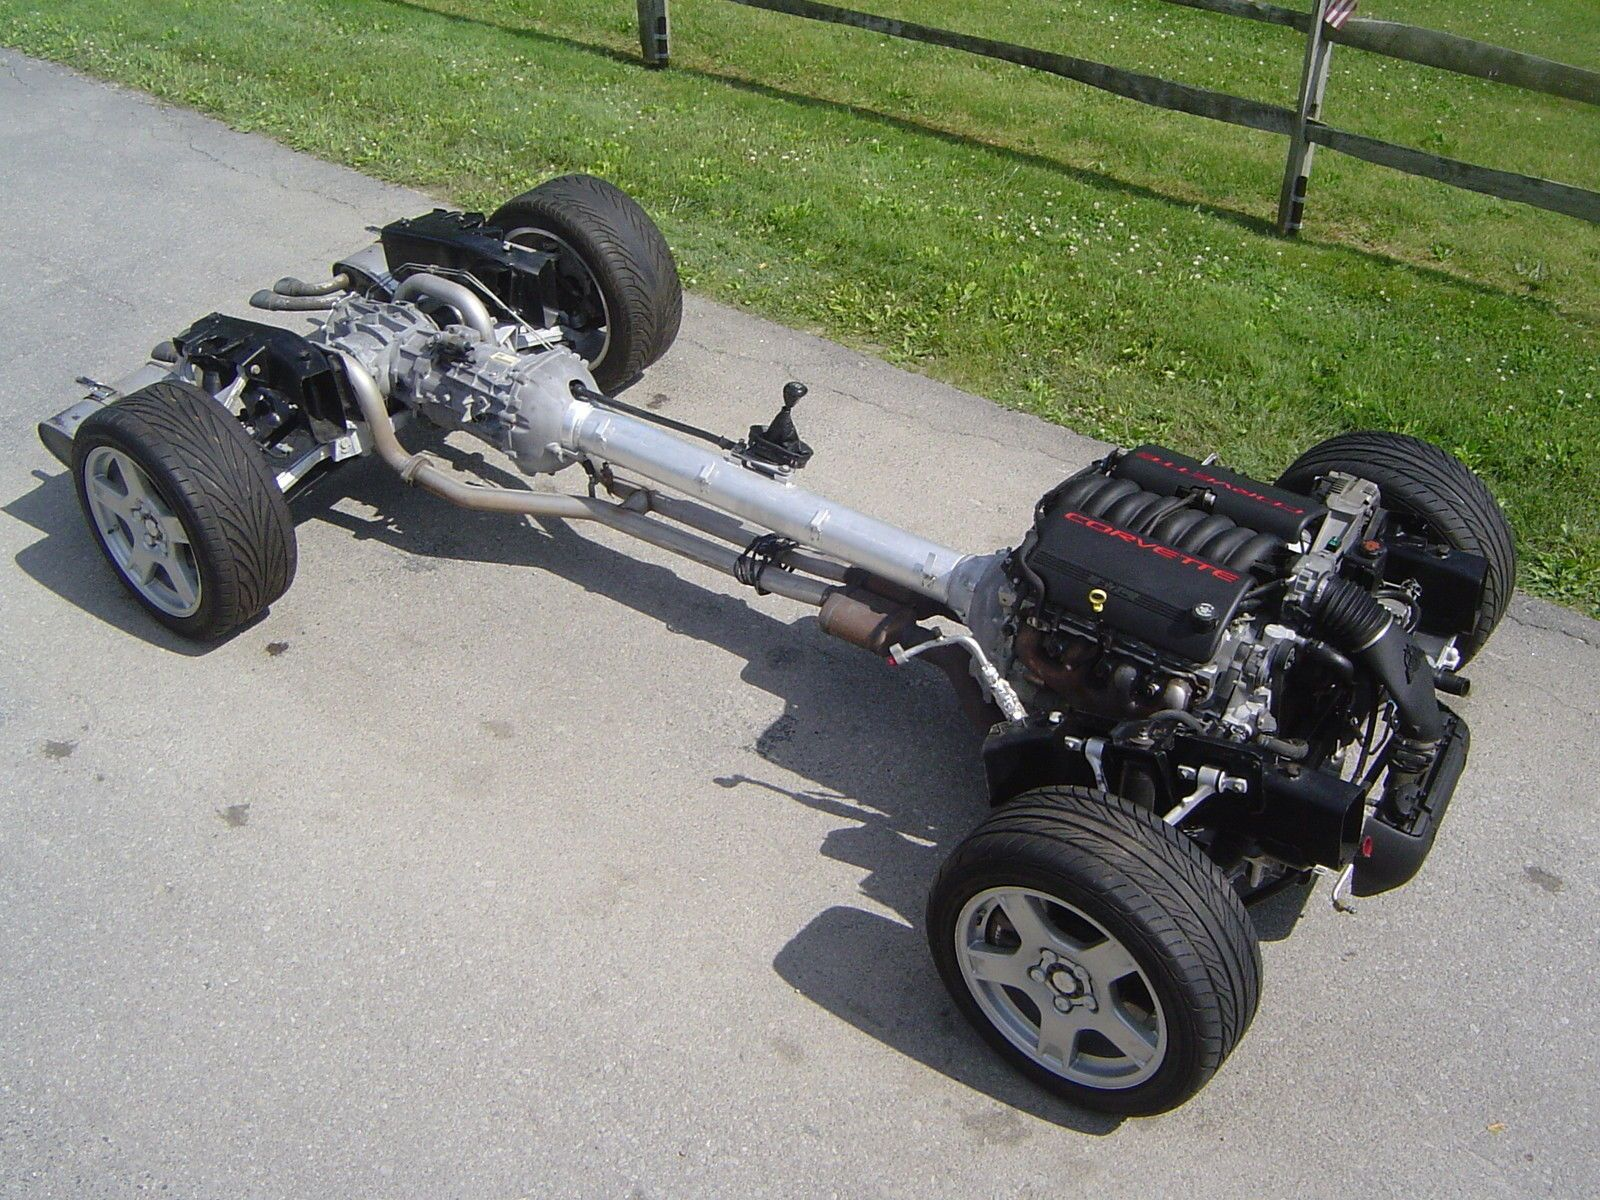 99 corvette engine 6 speed rolling chassis complete kit to run